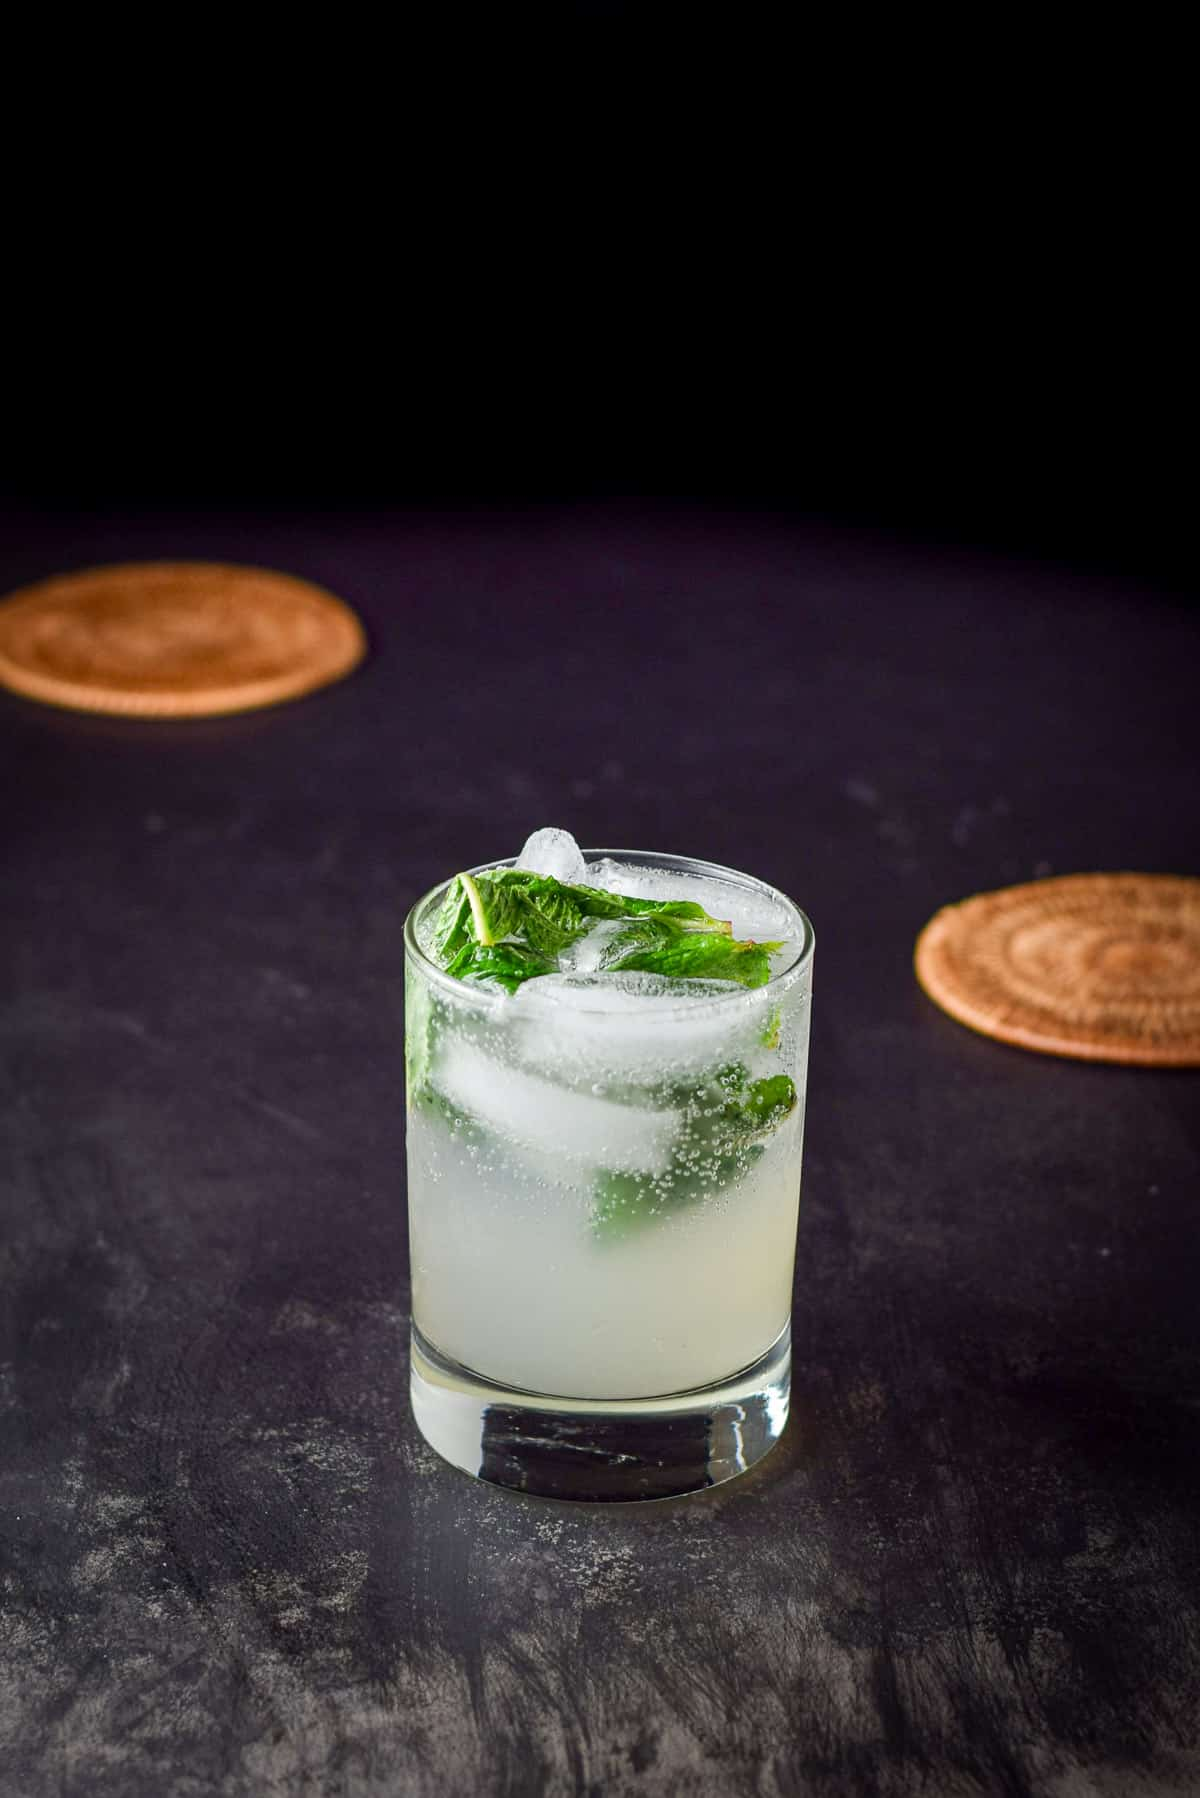 A double old fashioned glass filled with a mojito with mint floating in it